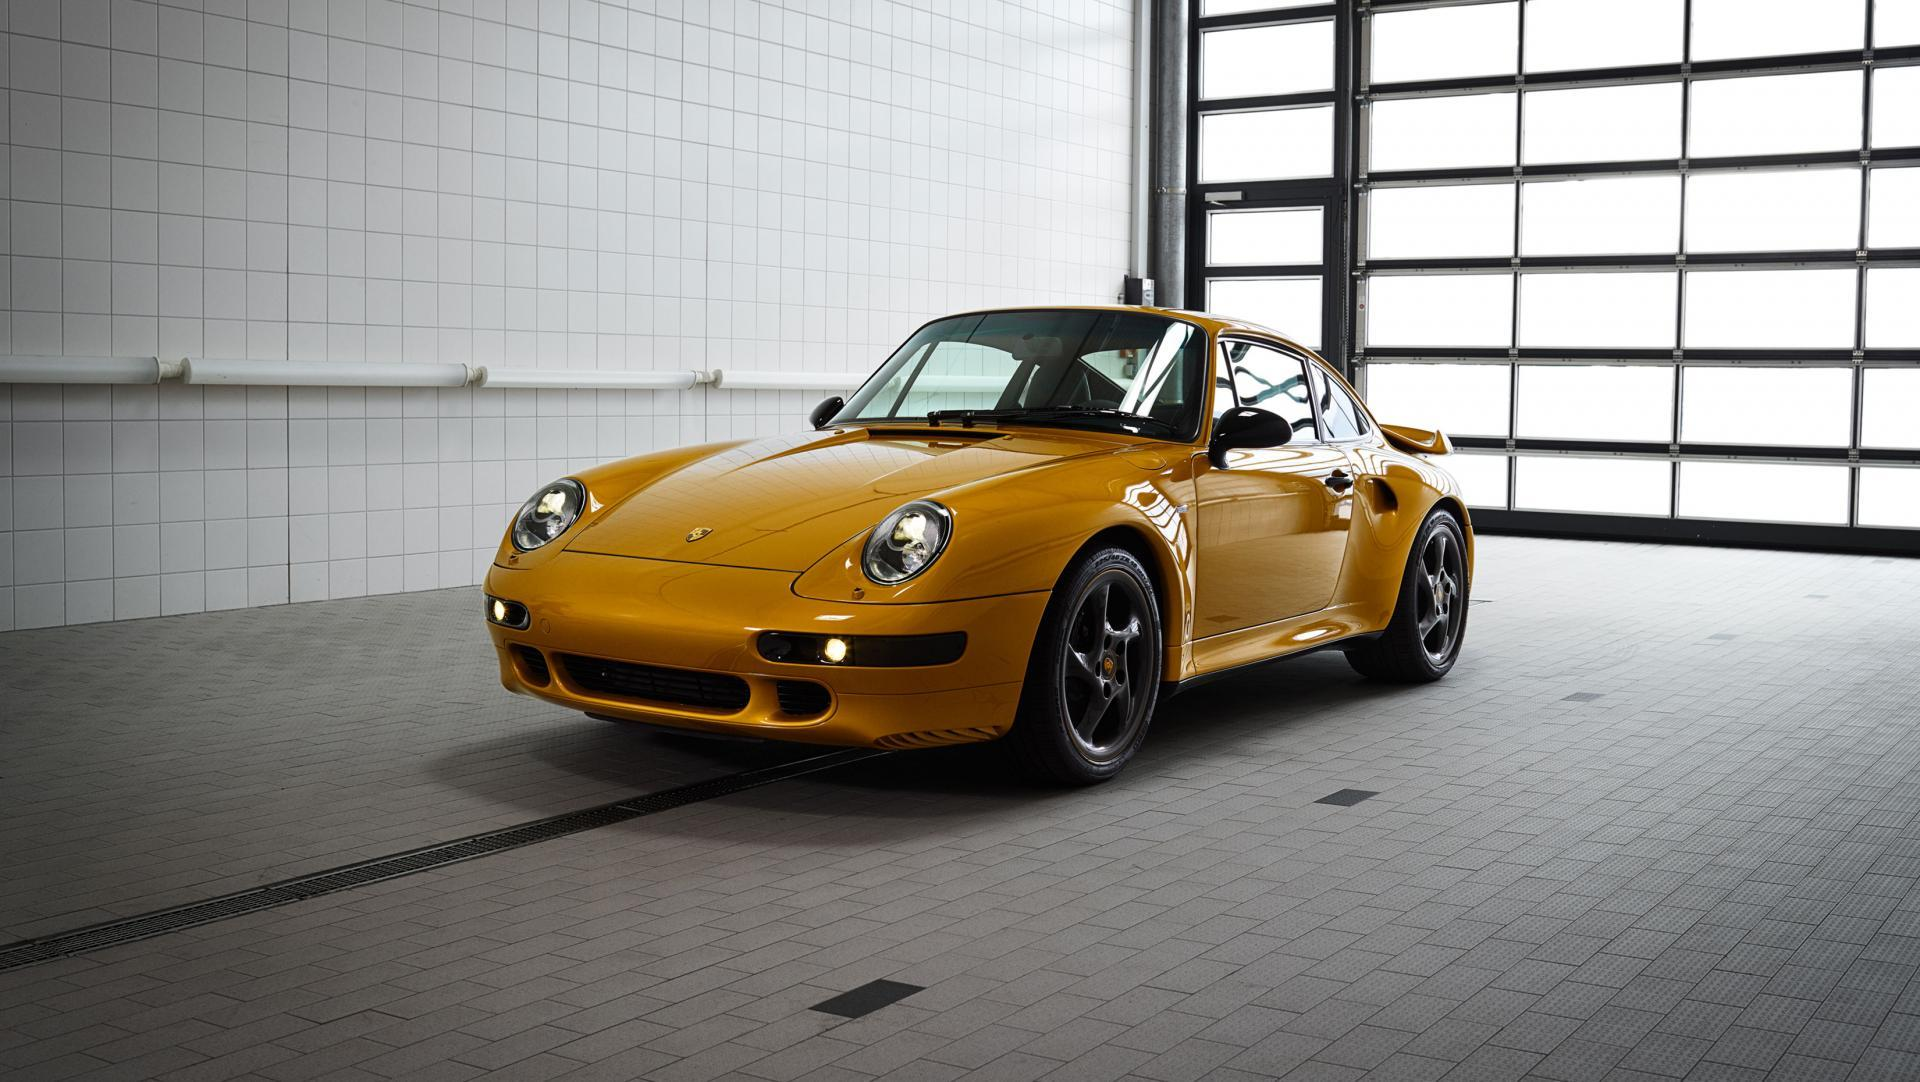 High 993 turbo the reveal classic project gold 2018 porsche ag 1